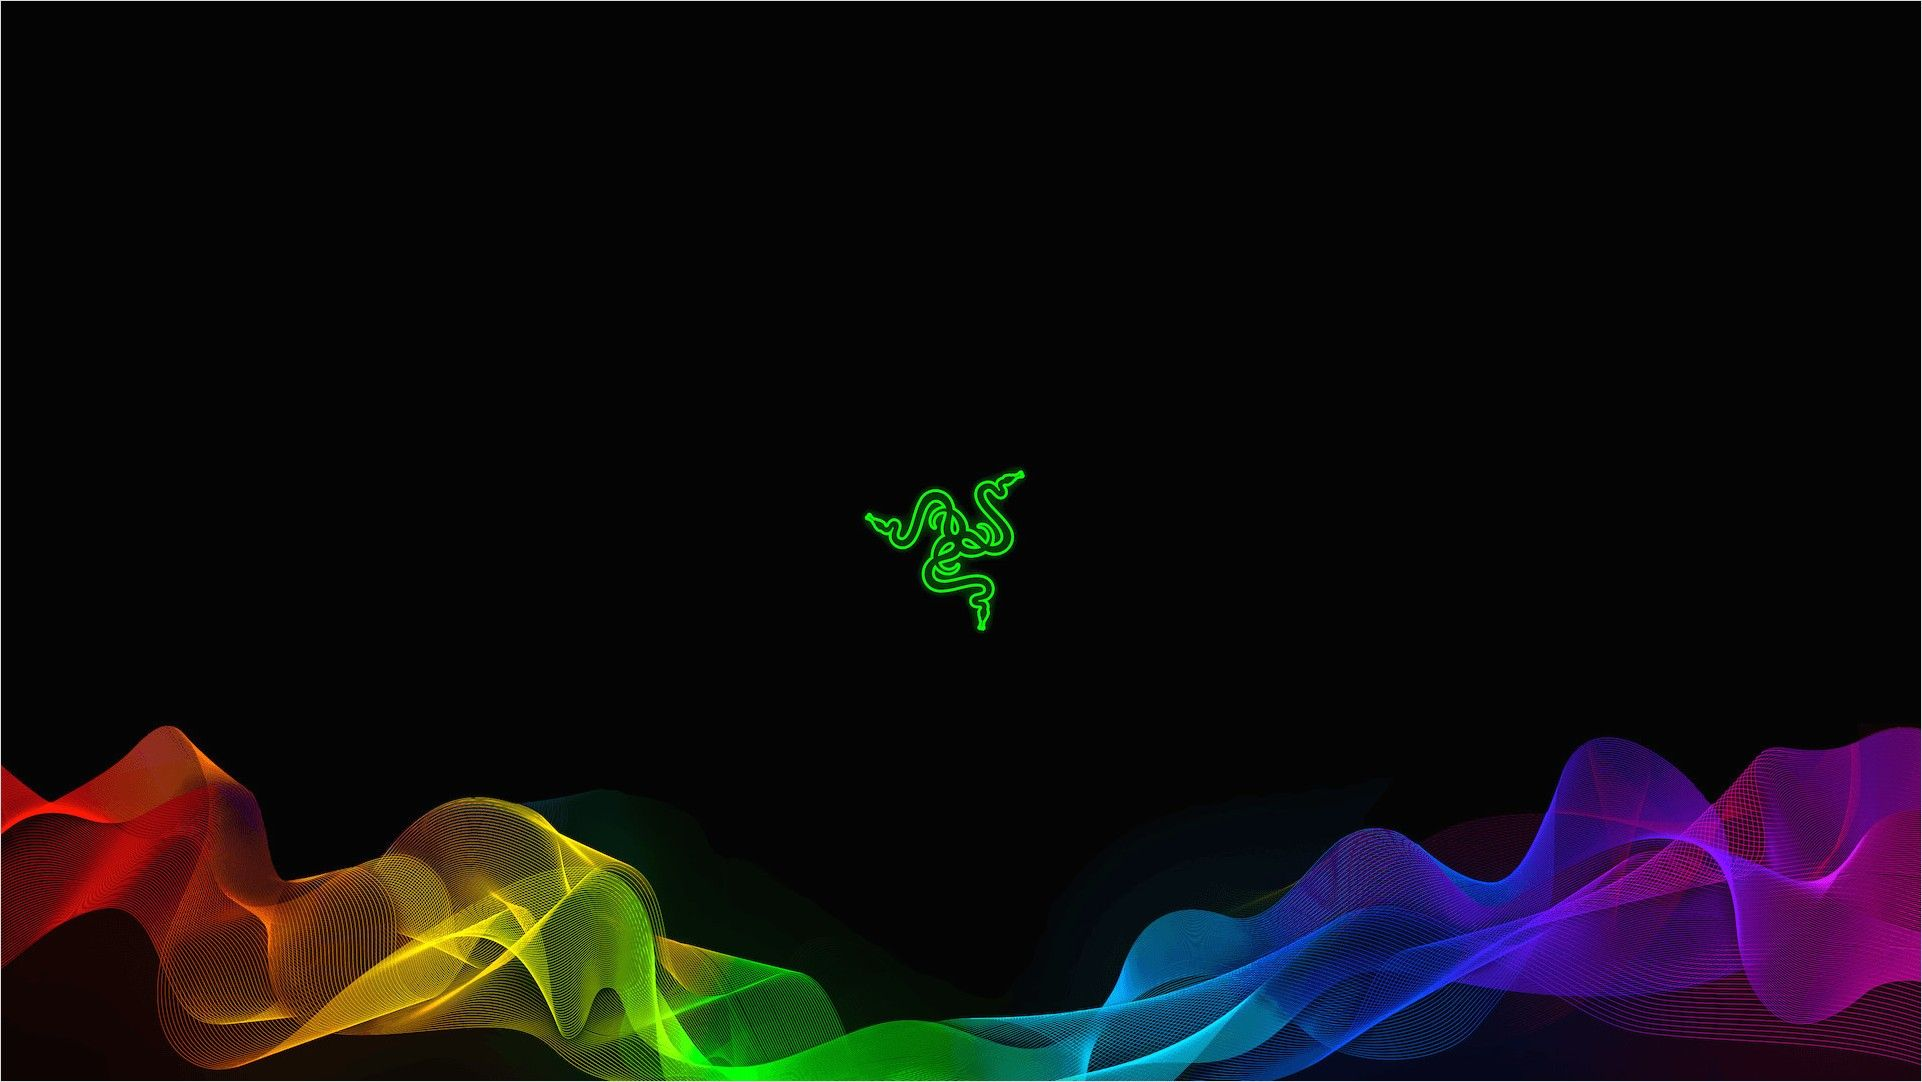 Razer Wallpaper 4k Pc In 2020 Gaming Wallpapers Iphone Homescreen Wallpaper Wallpaper Pc